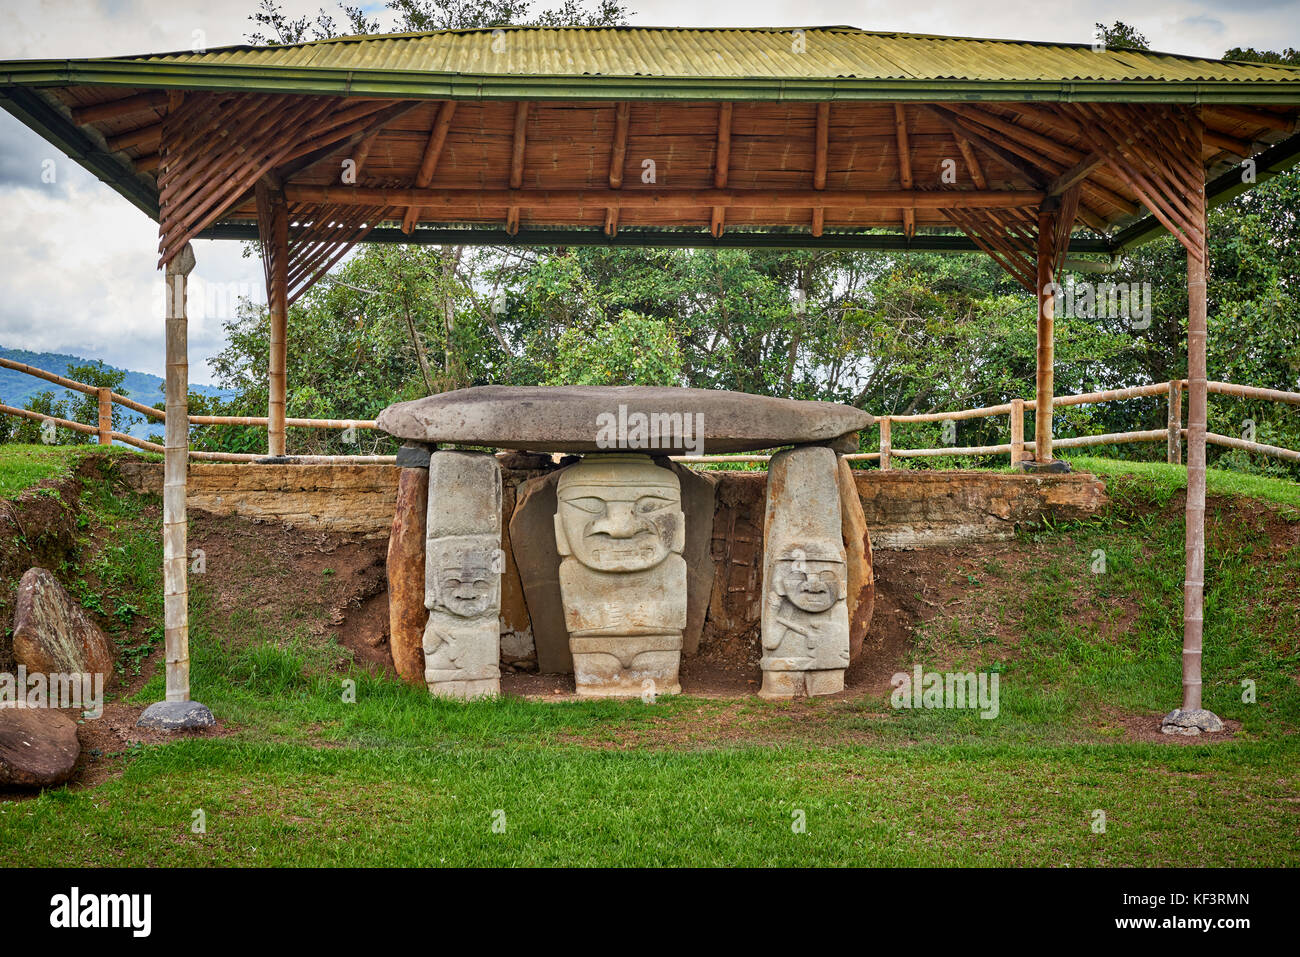 Precolombian statues in front of tombs in Mesita A of archaeological park Parque Arqueologico De San Agustin, Colombia, - Stock Image